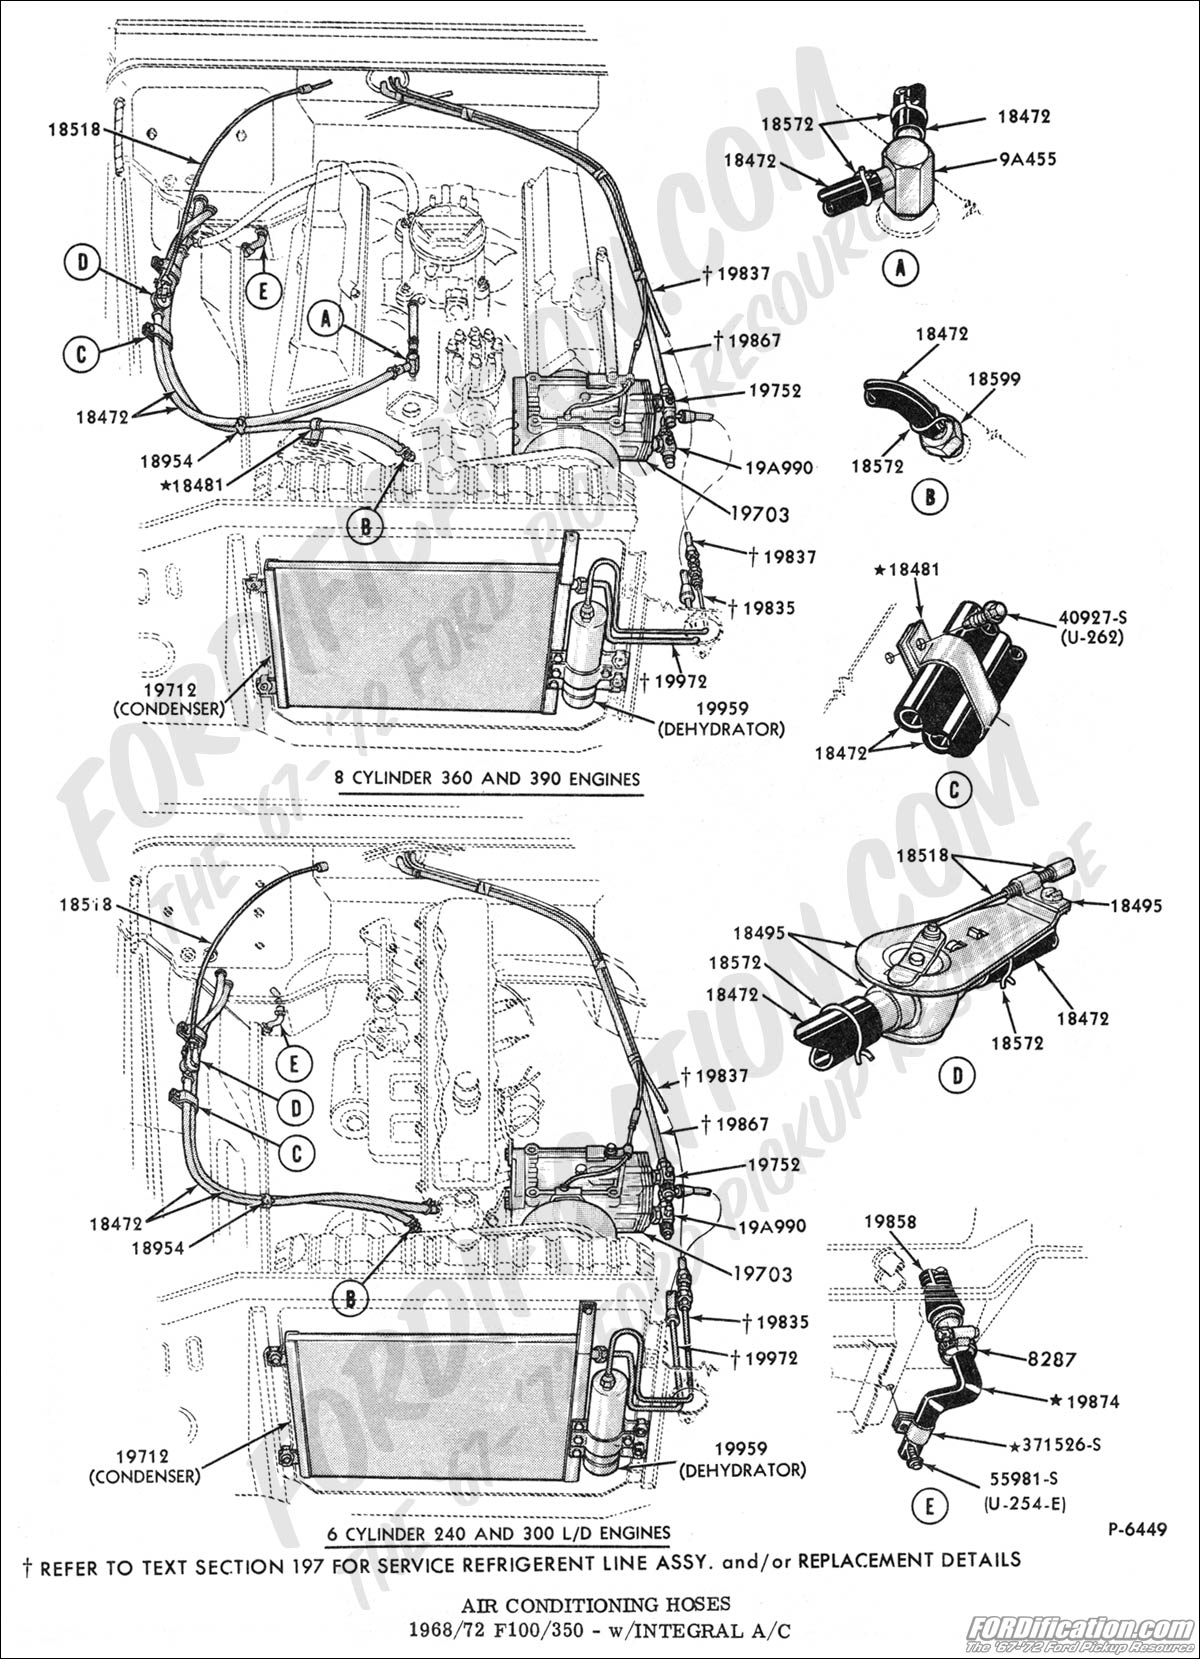 92066 Engine Block Heater 2 in addition Chevrolet Silverado 6 6 2001 Specs And Images likewise Duramax Coolant Filter Location as well Chevy Colorado Hood Engine Diagram further 17342 How Replace Exhaust Camshaft Actuator Solenoid Print. on 2005 chevy colorado thermostat